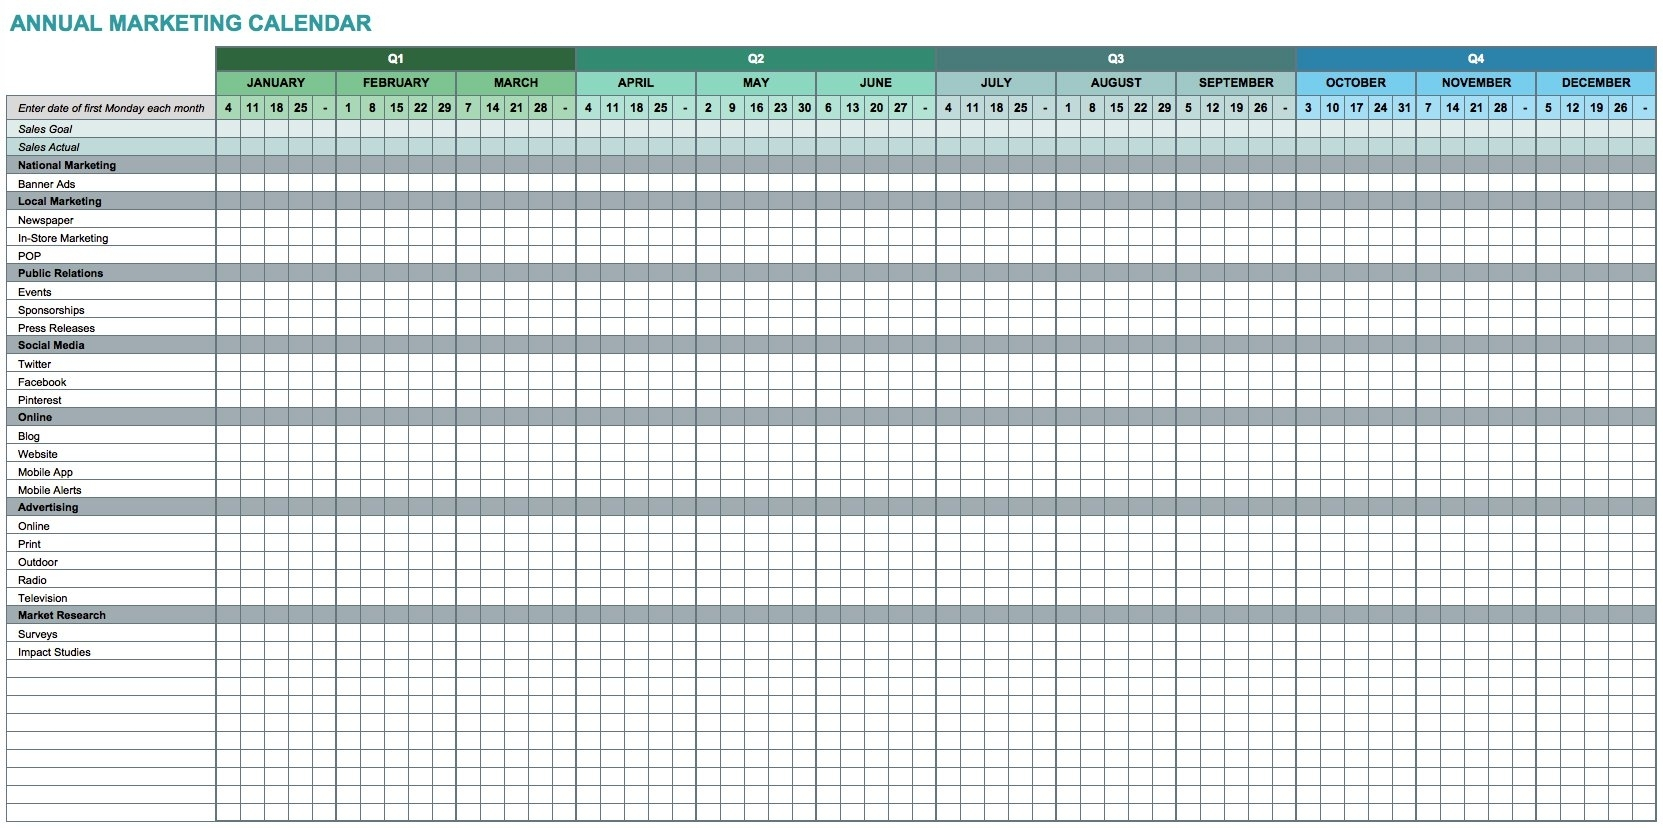 Detailed Event Schedule Template Project Plan Training Excel | Smorad with regard to How To Detailed Event Scheduled